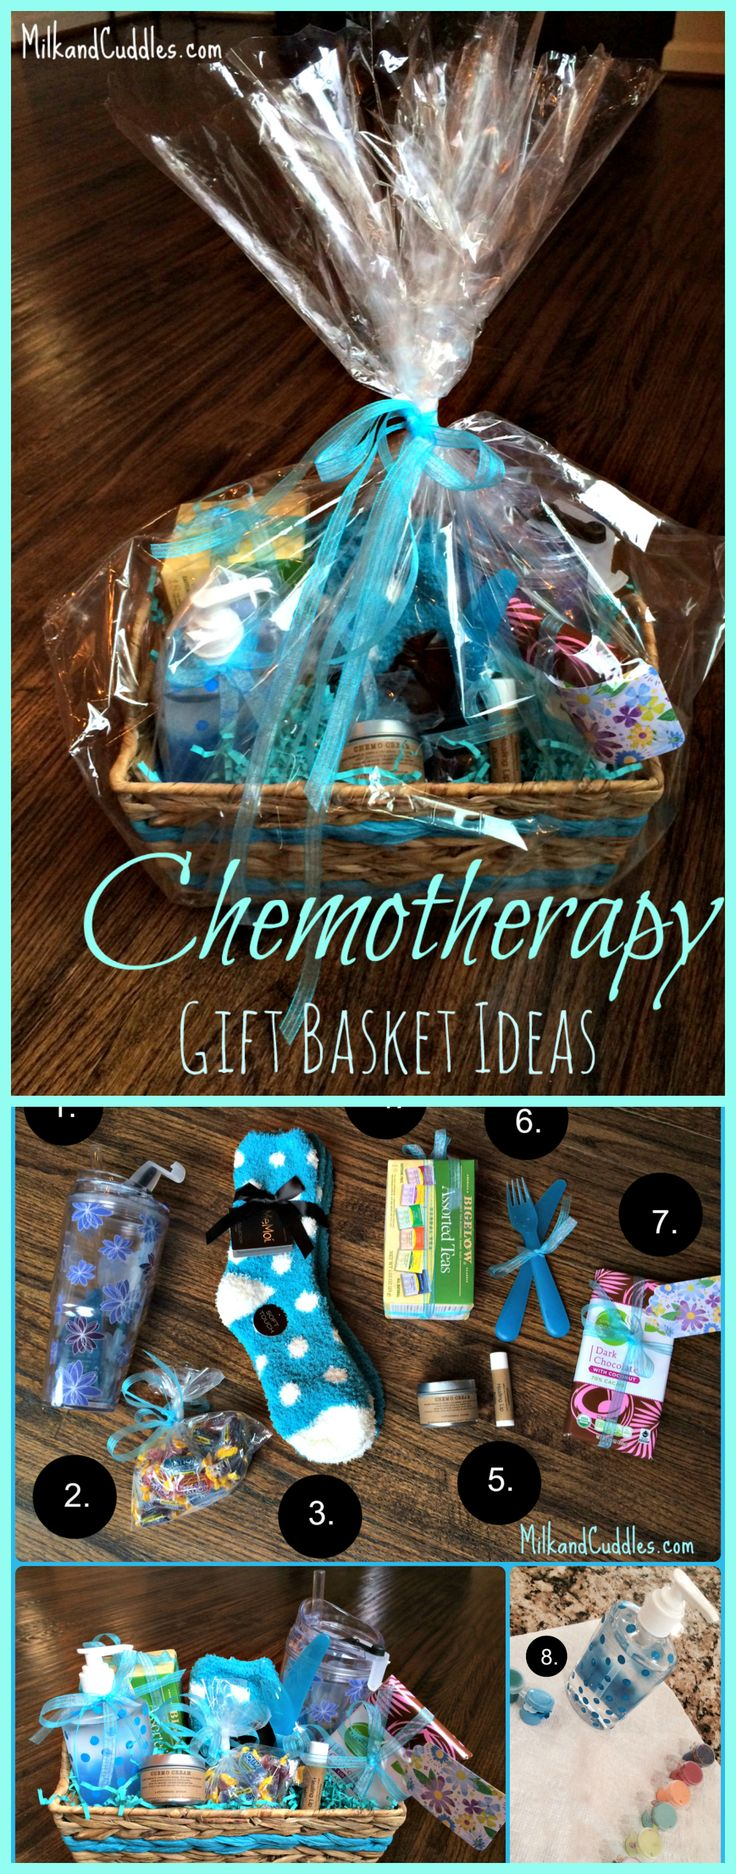 Wondering what gifts might be helpful to someone going through chemotherapy? This post gives you 8 Ideas for creating a Chemo Care Gift Basket!! Easy and helpful! #chemo